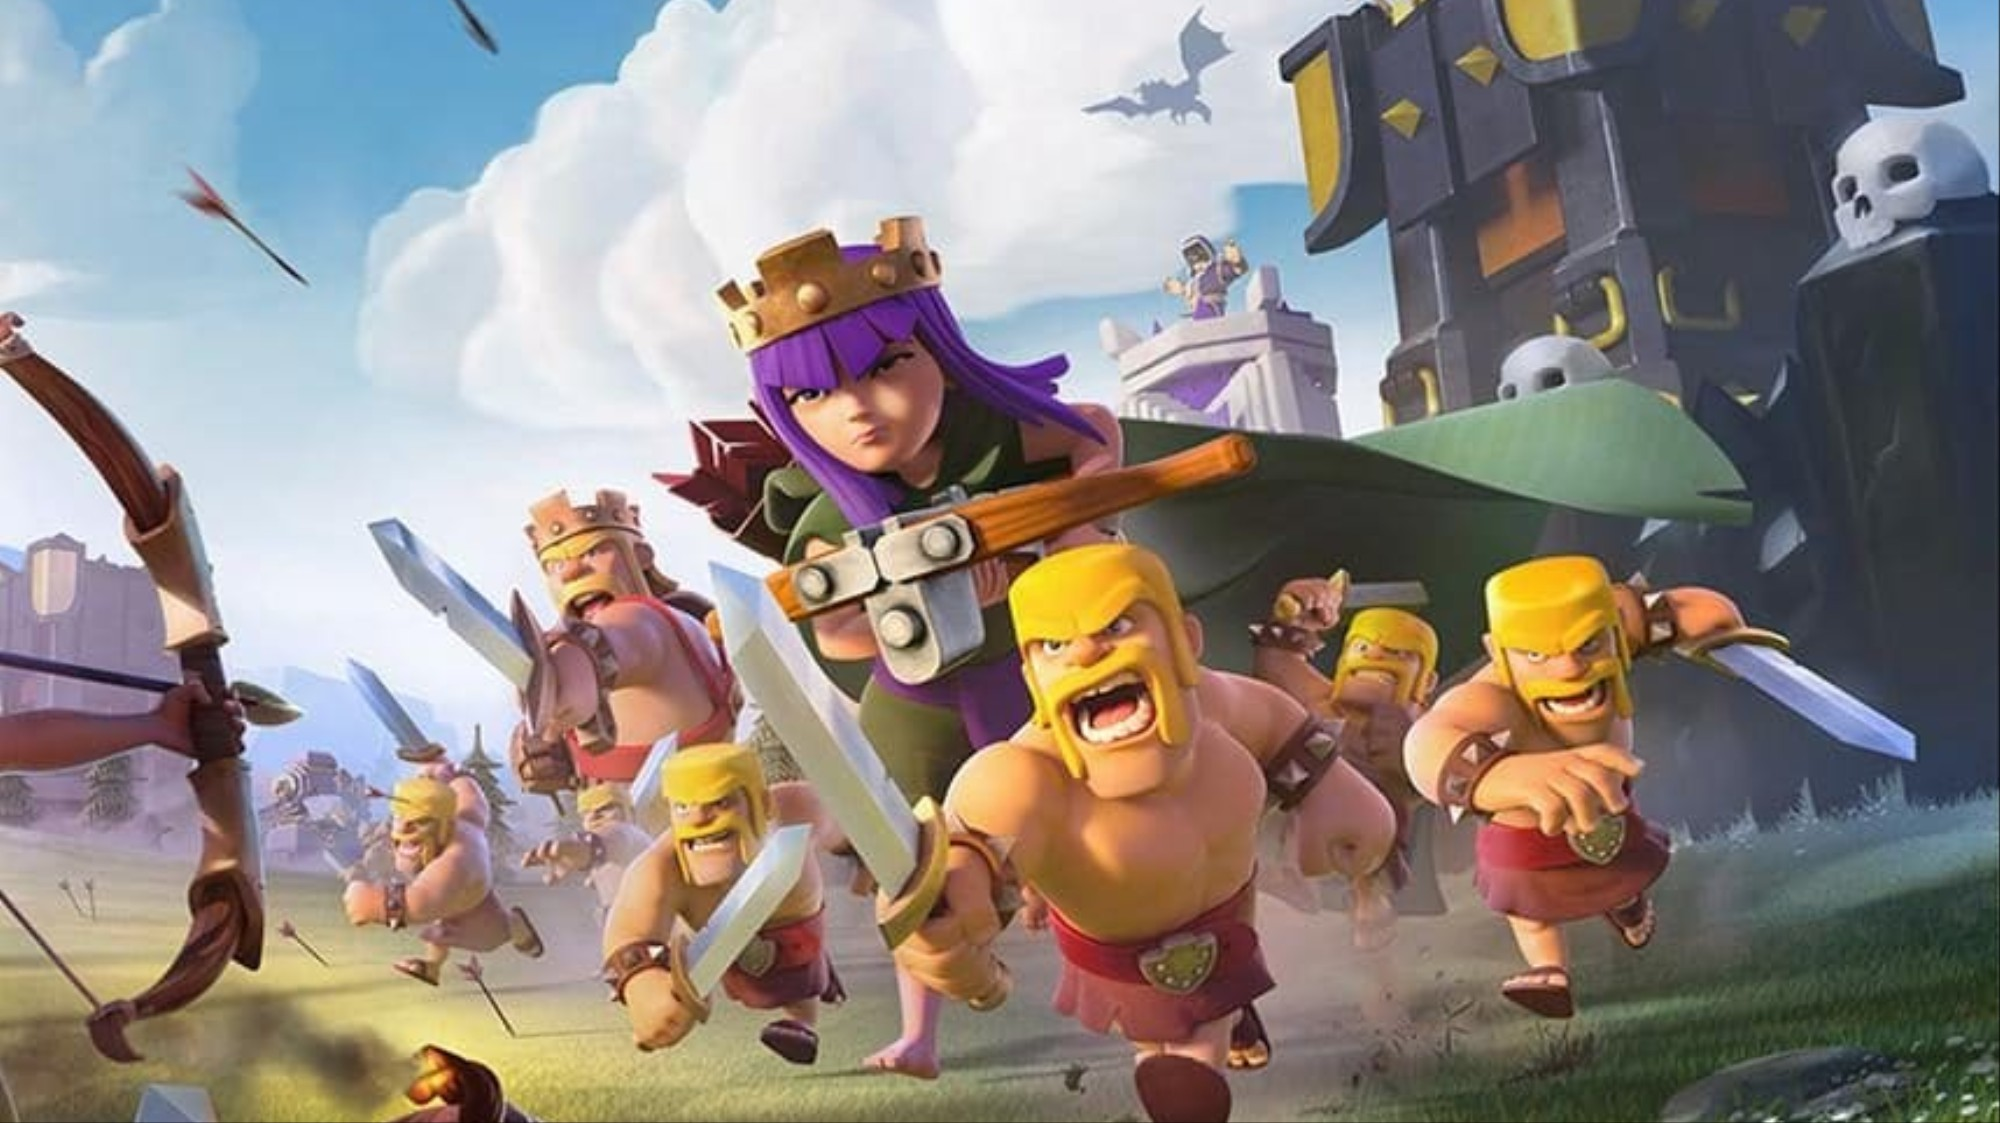 Scammers Are Using 'Clash of Clans' to Launder Money From